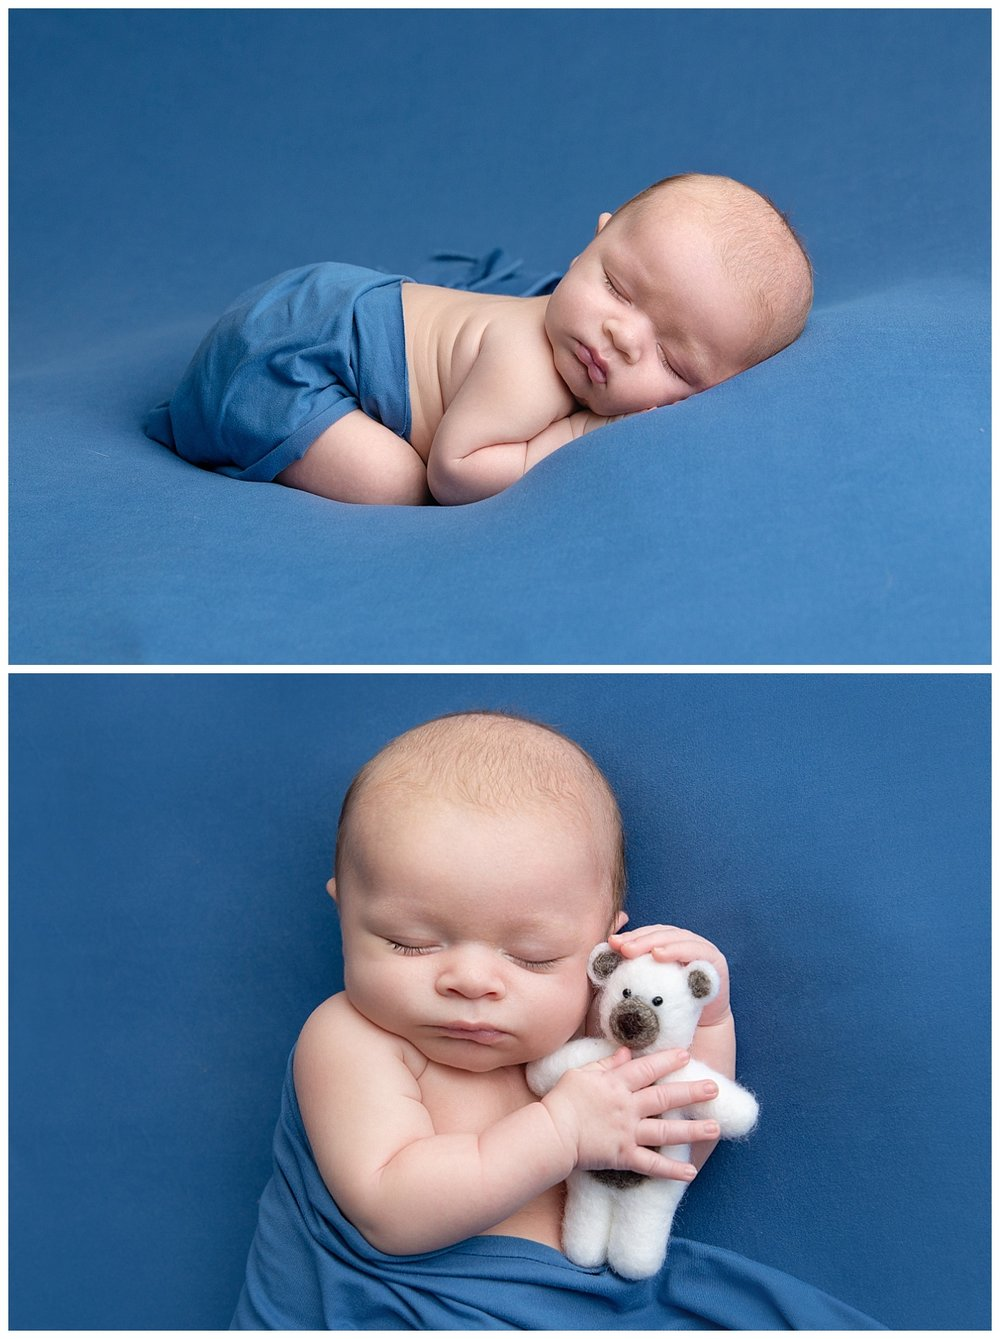 st-louis-newborn-photographer-baby-boy-on-bright-blue-backdrop-with-white-teddy-bear.jpg